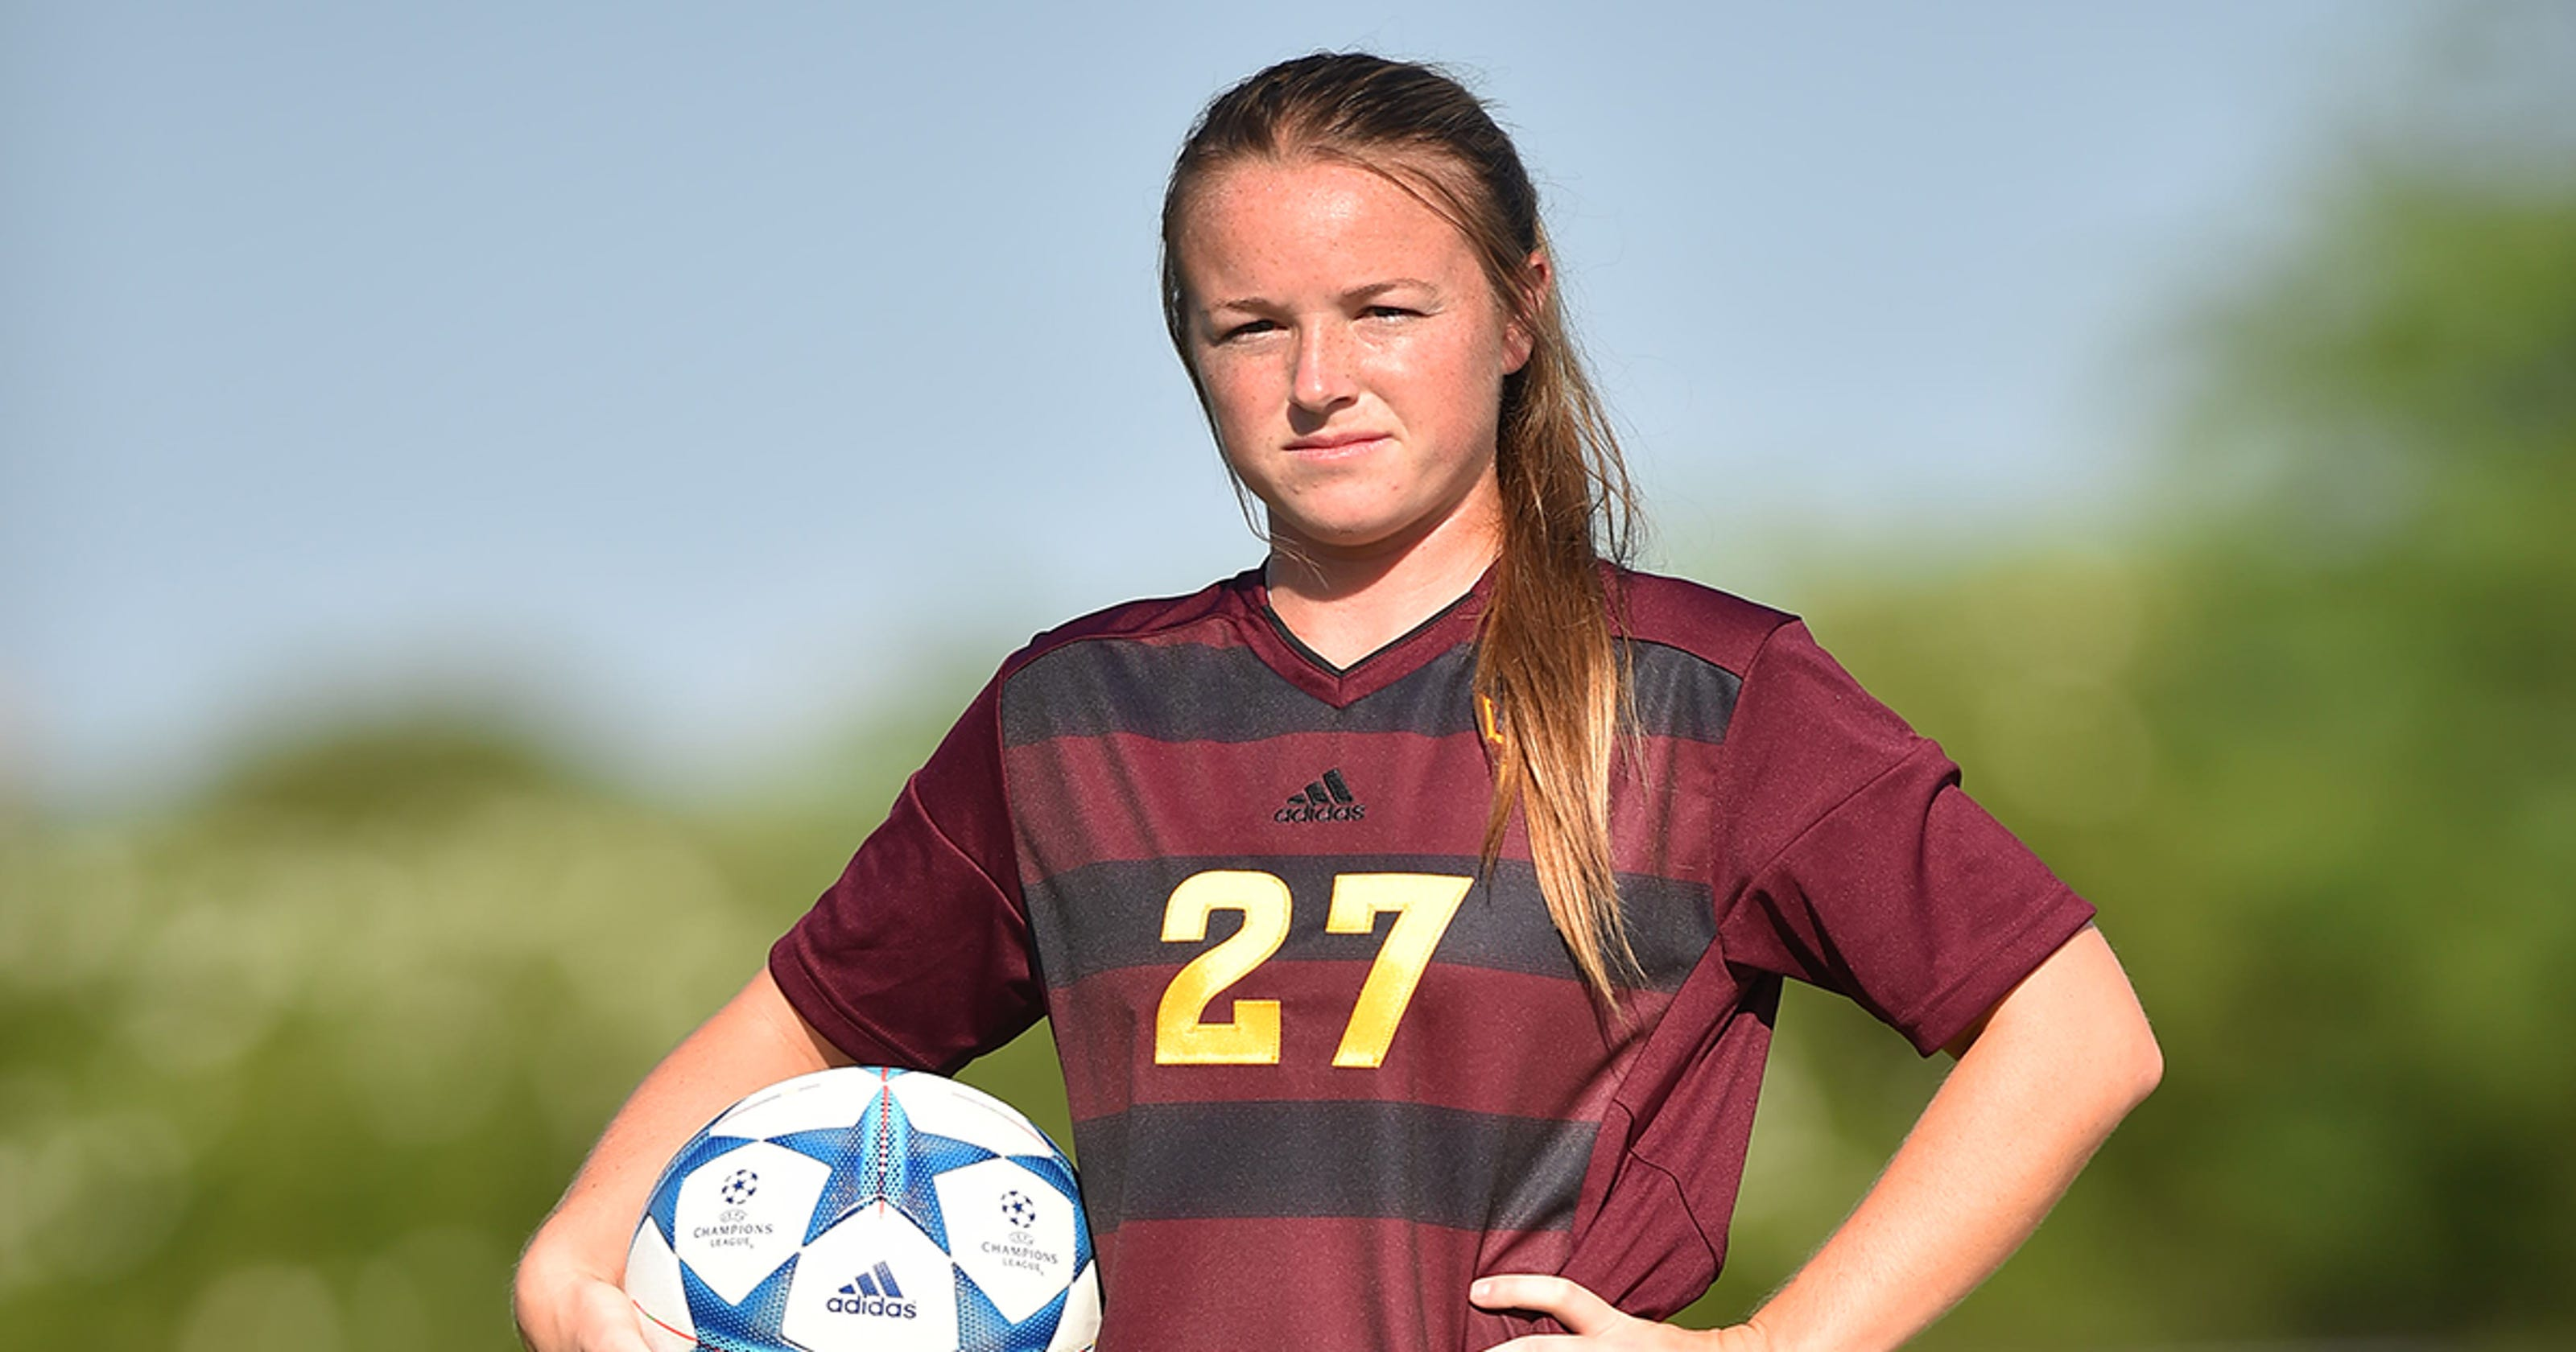 6b7c0ded0376 ASU soccer will be first team to play in new Adidas gear